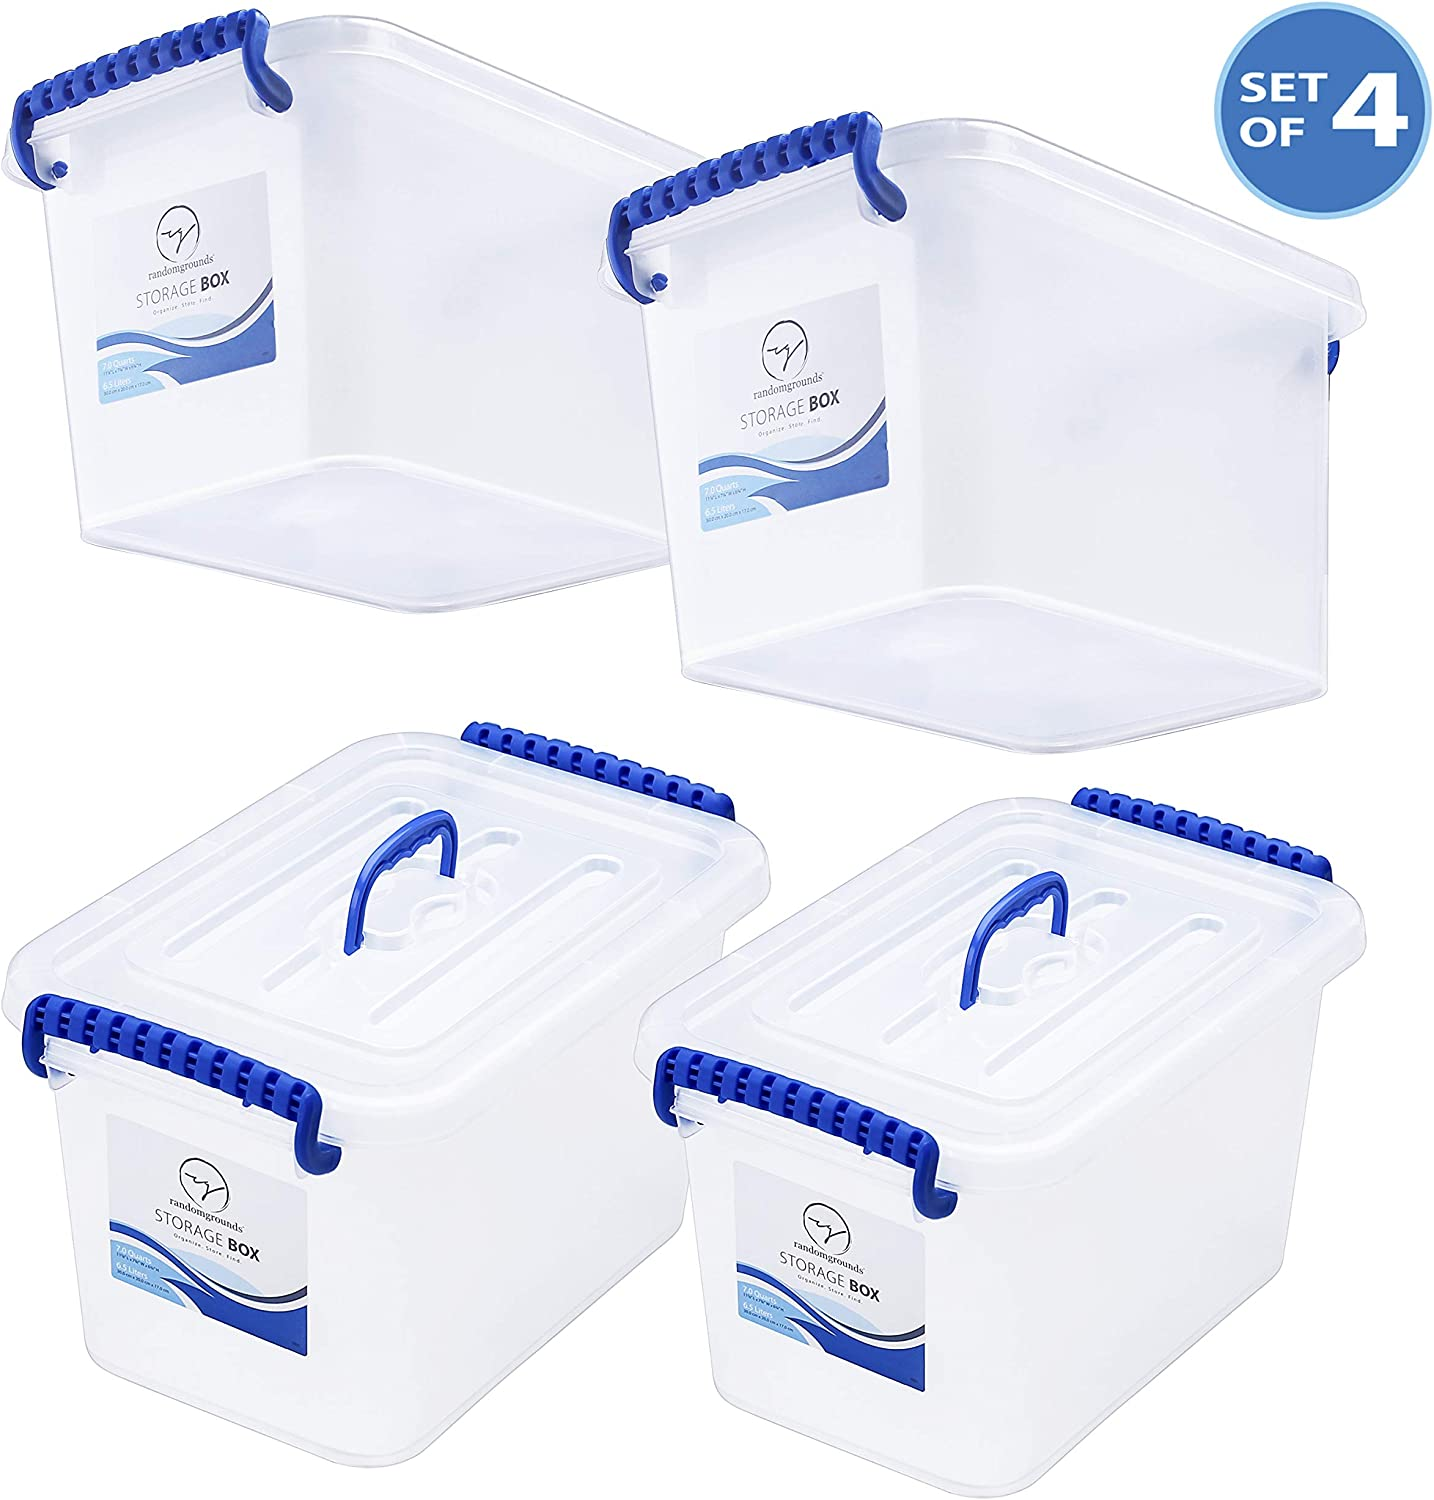 Storage Bins with Lids and Handle - Great for Toys Legos Art Crafts Tools Pantry Kitchen Closet Bathroom Organization - Plastic Stackable Small Tote Box Containers - Semi Clear White, 7 Quart Set of 4